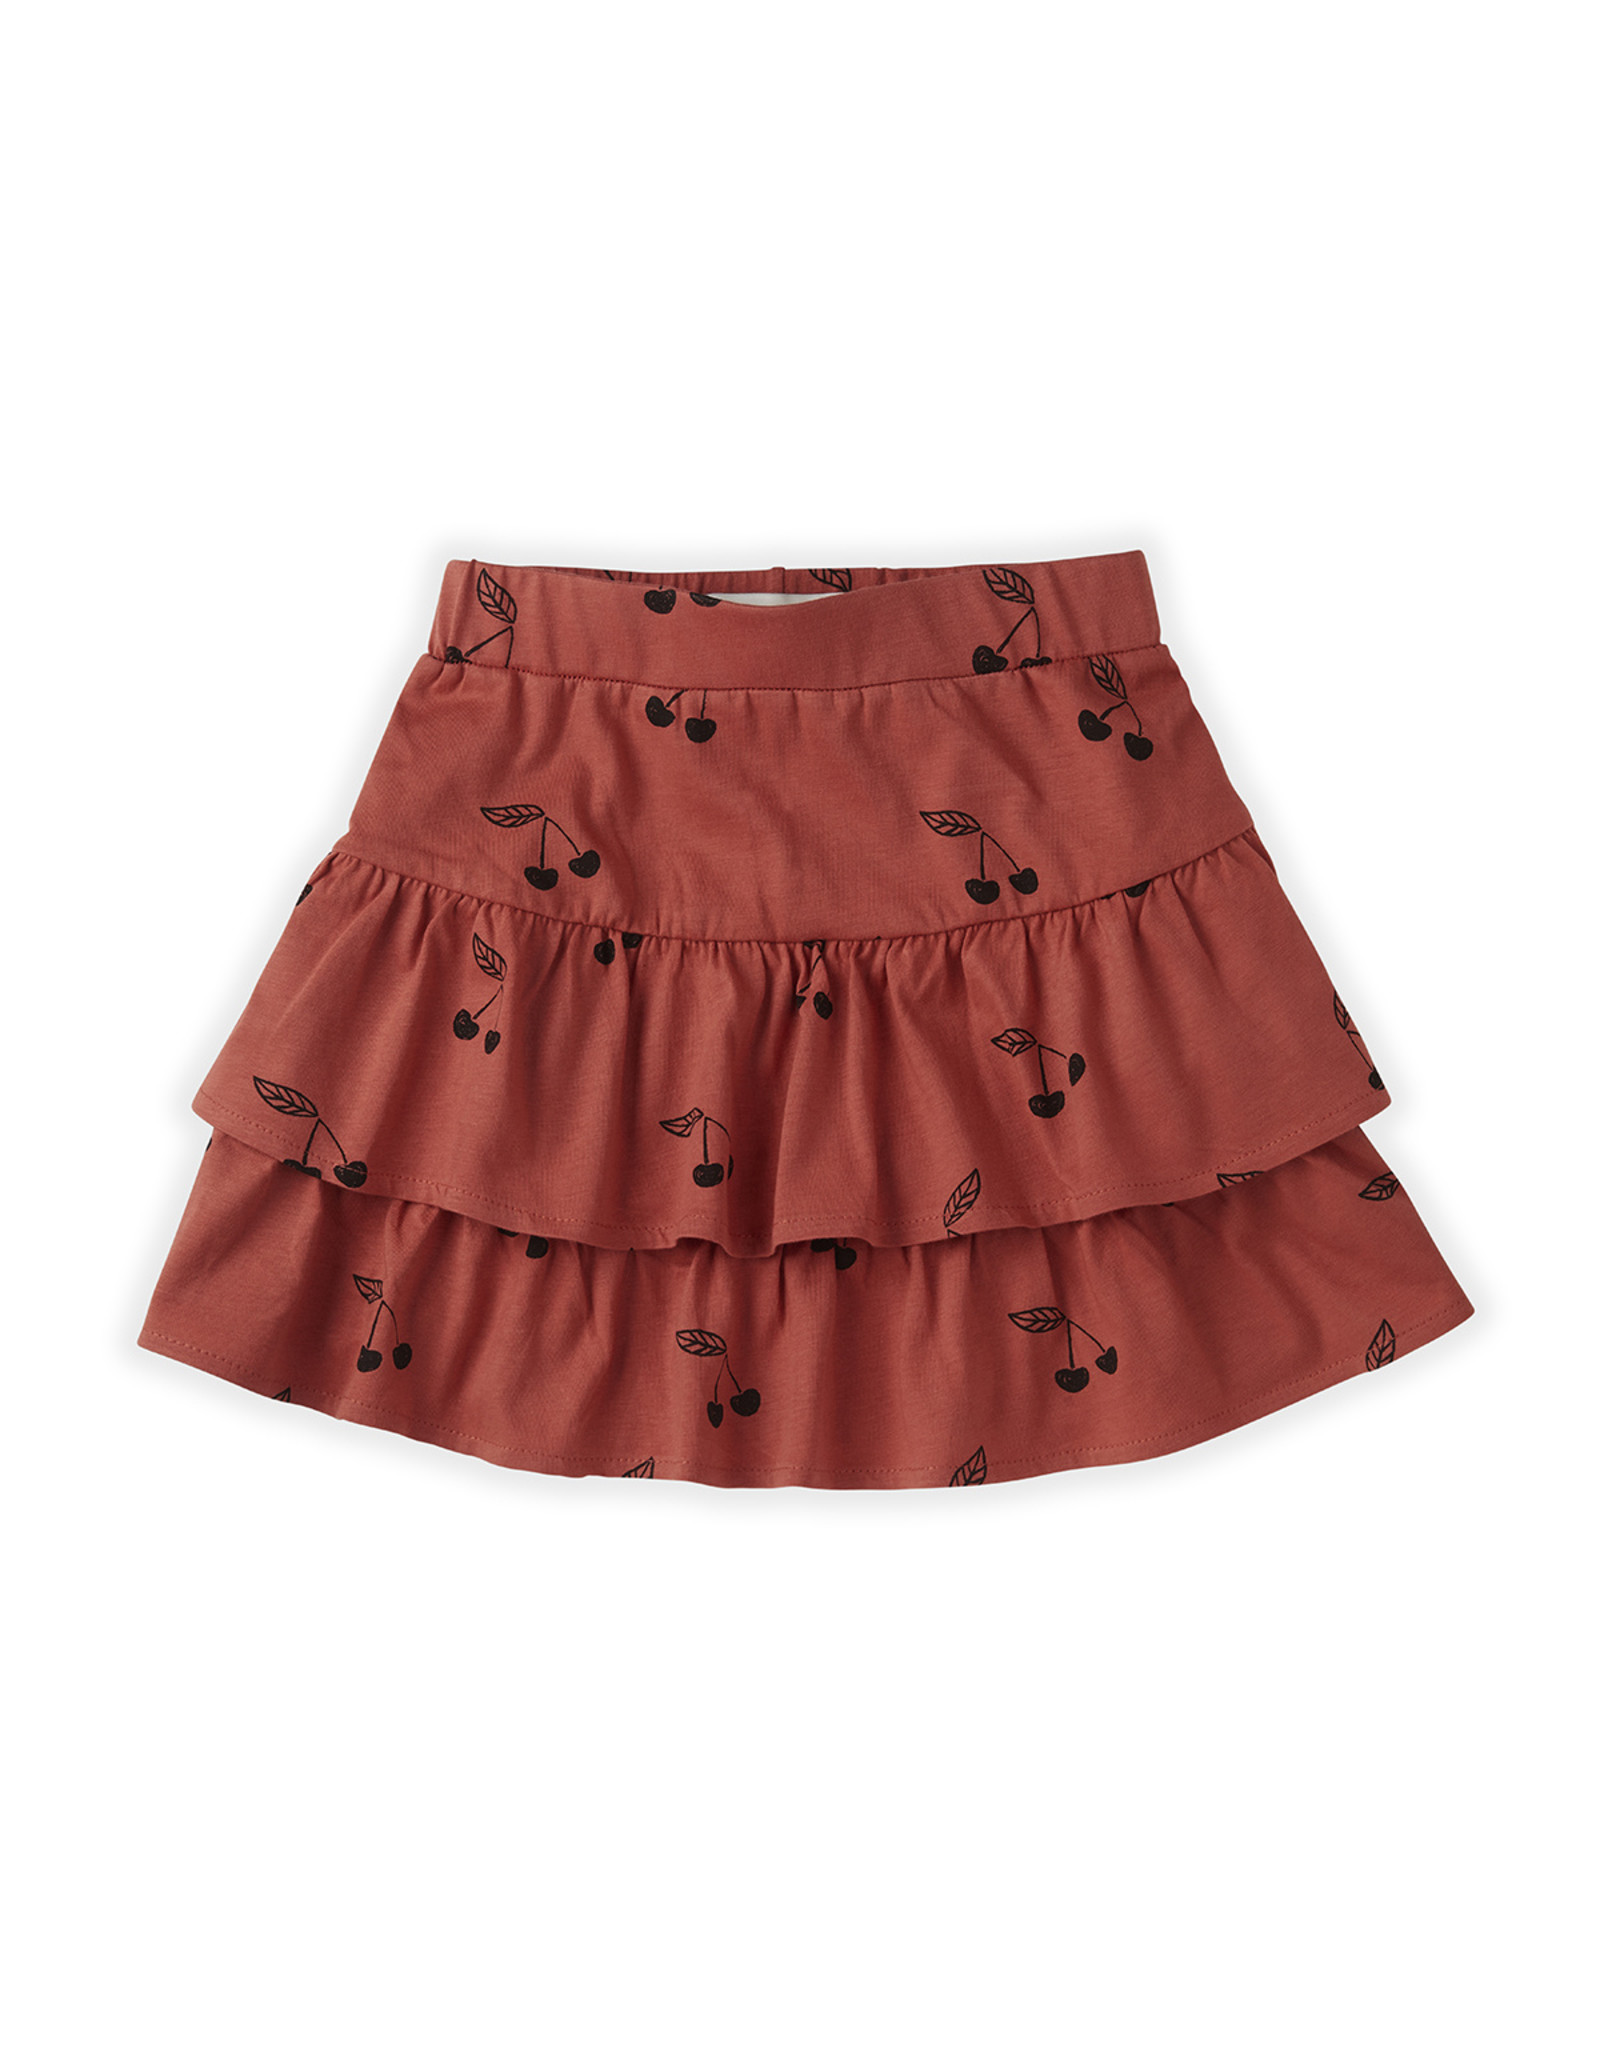 Sproet & Sprout SS - Skirt Ruffle Print Cherry